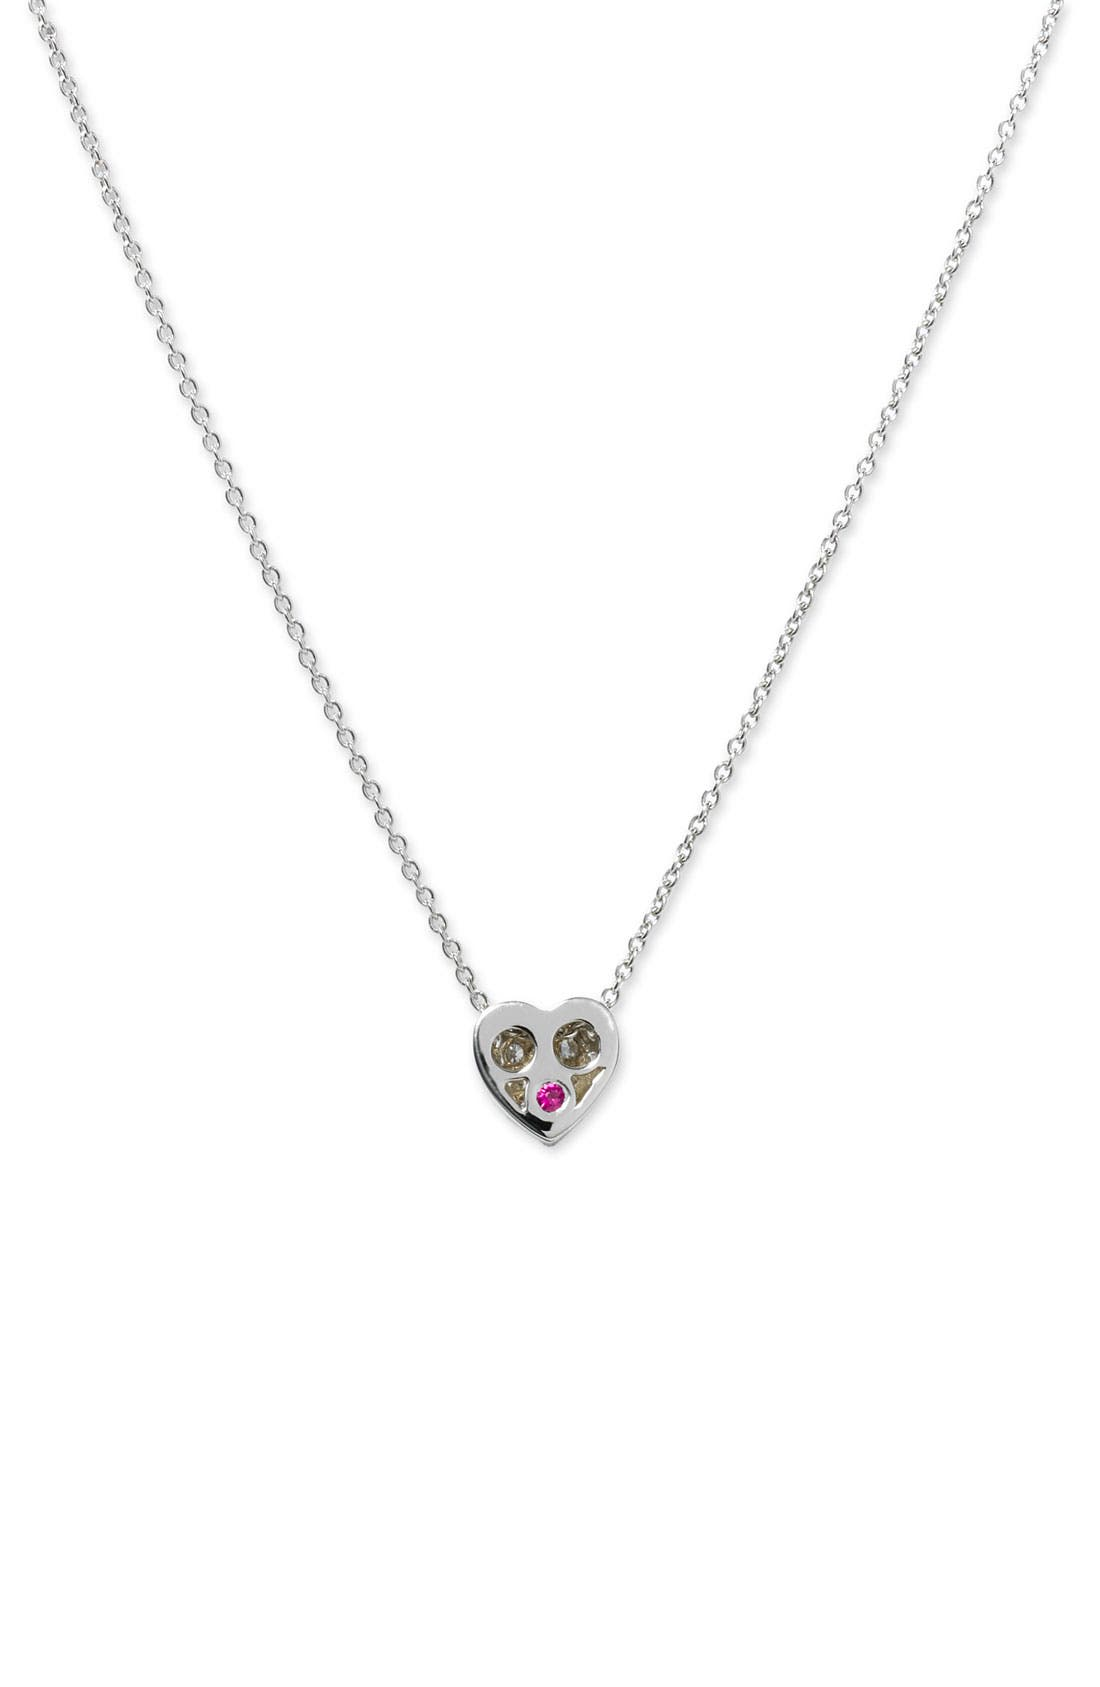 'Tiny Treasures' Diamond Puffed Heart Pendant Necklace,                             Alternate thumbnail 2, color,                             041